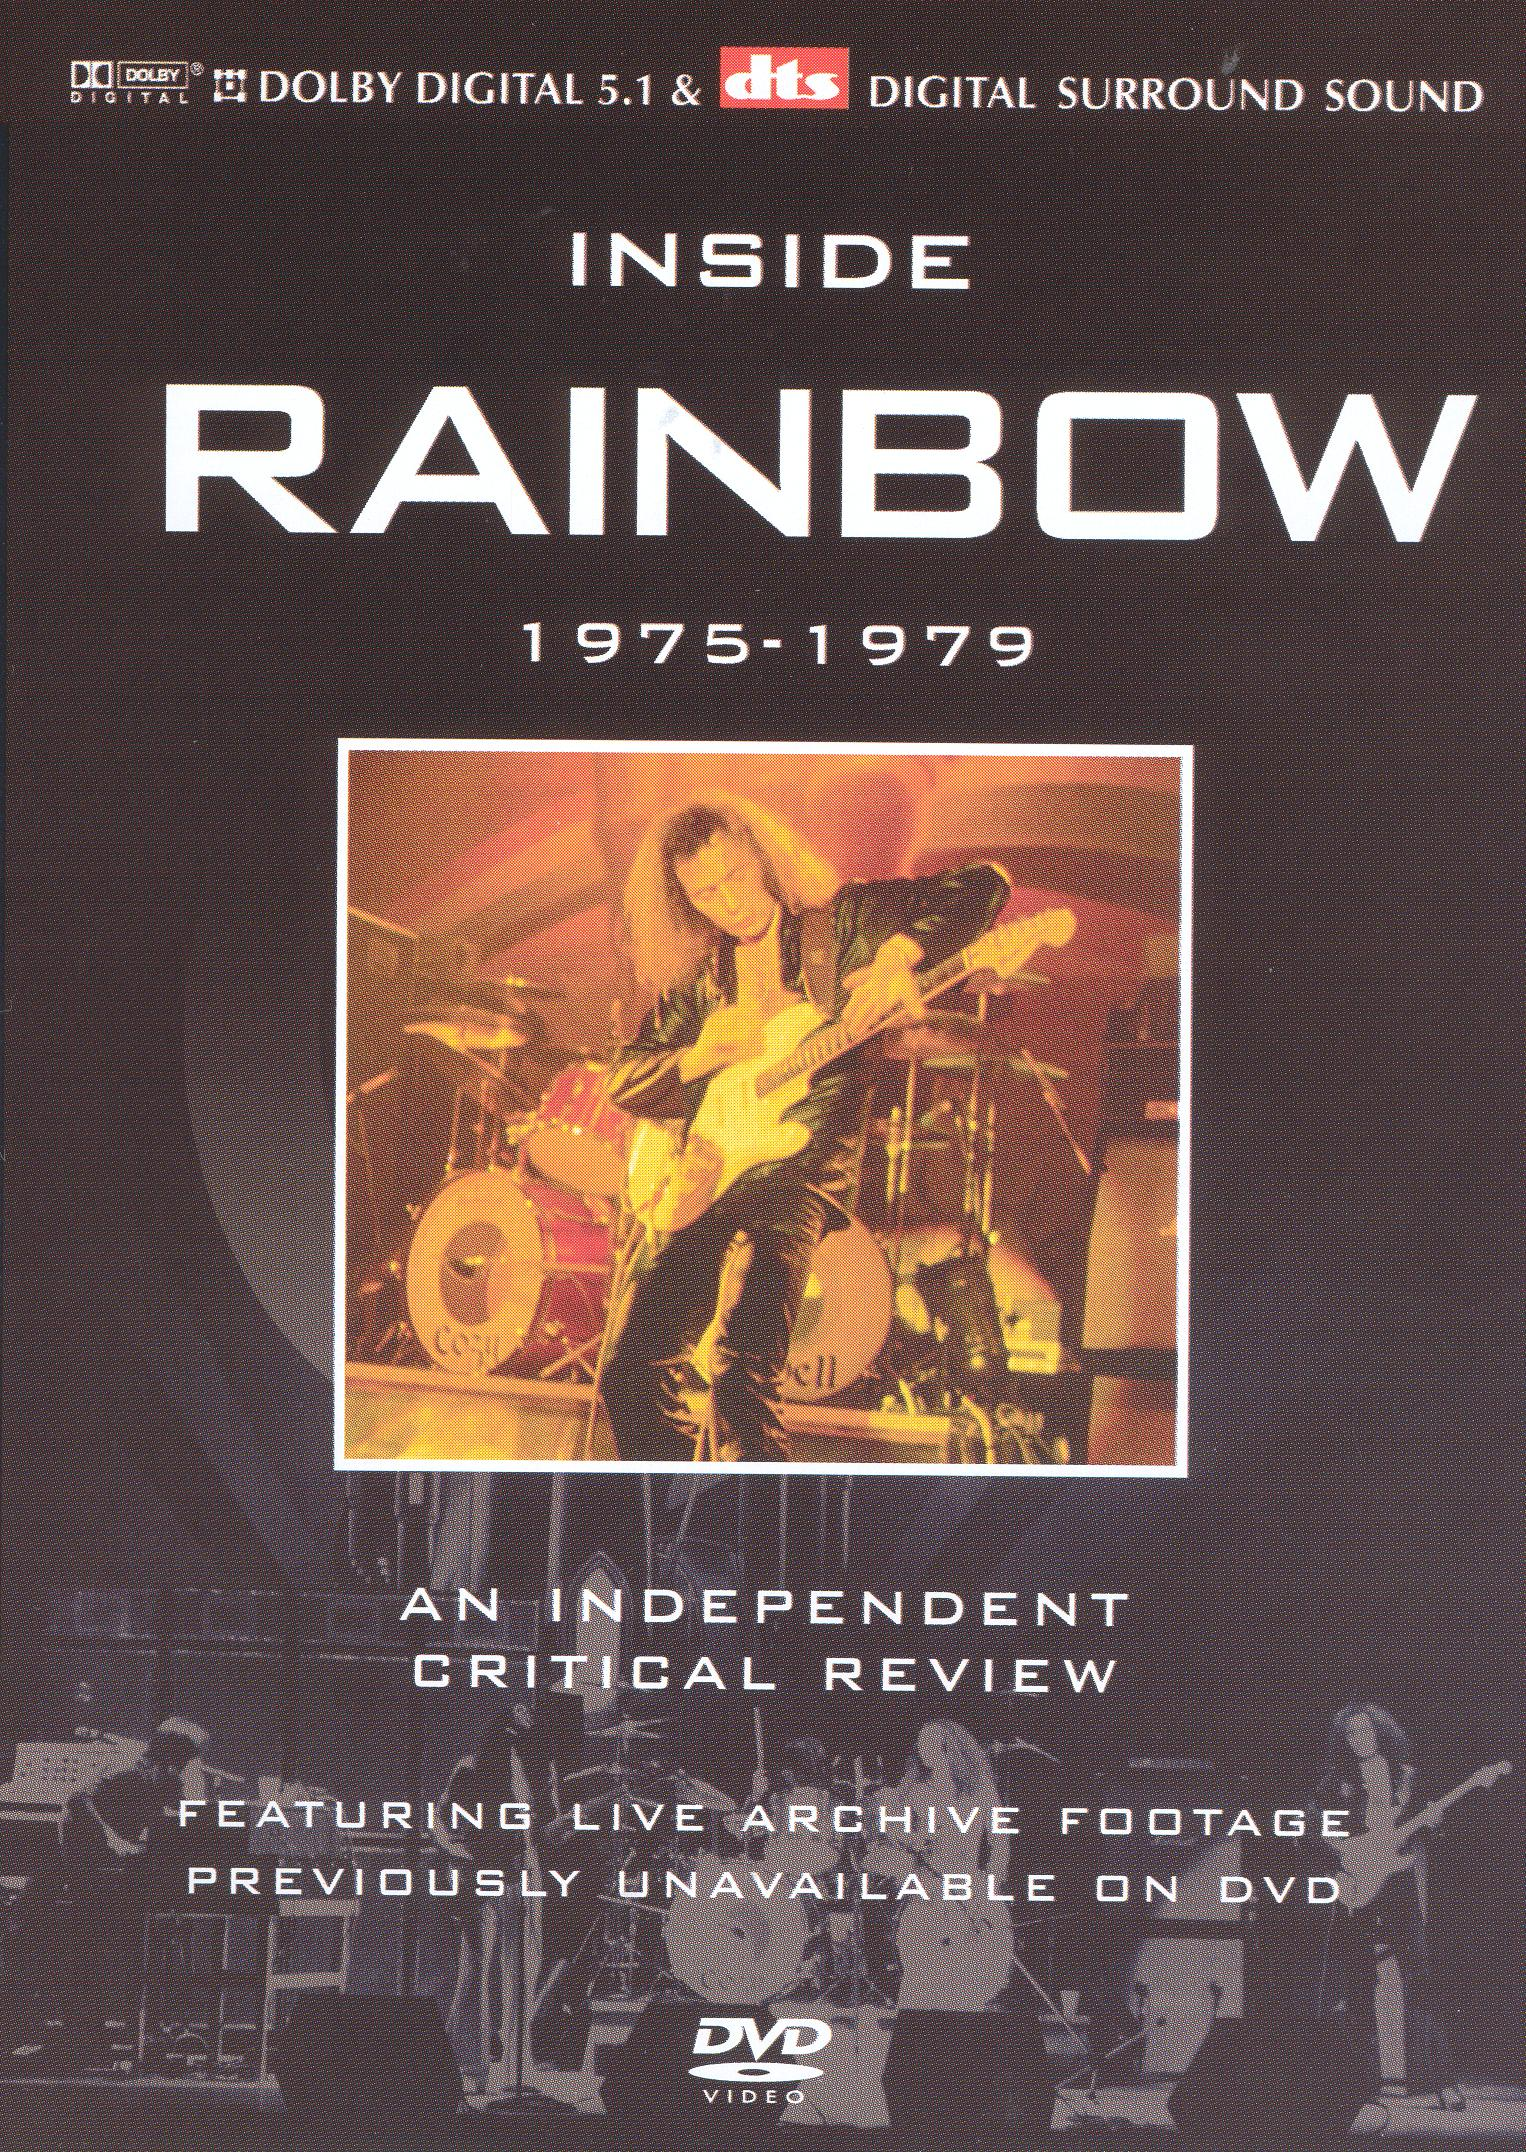 Inside Rainbow: A Critical Review - 1975-1979